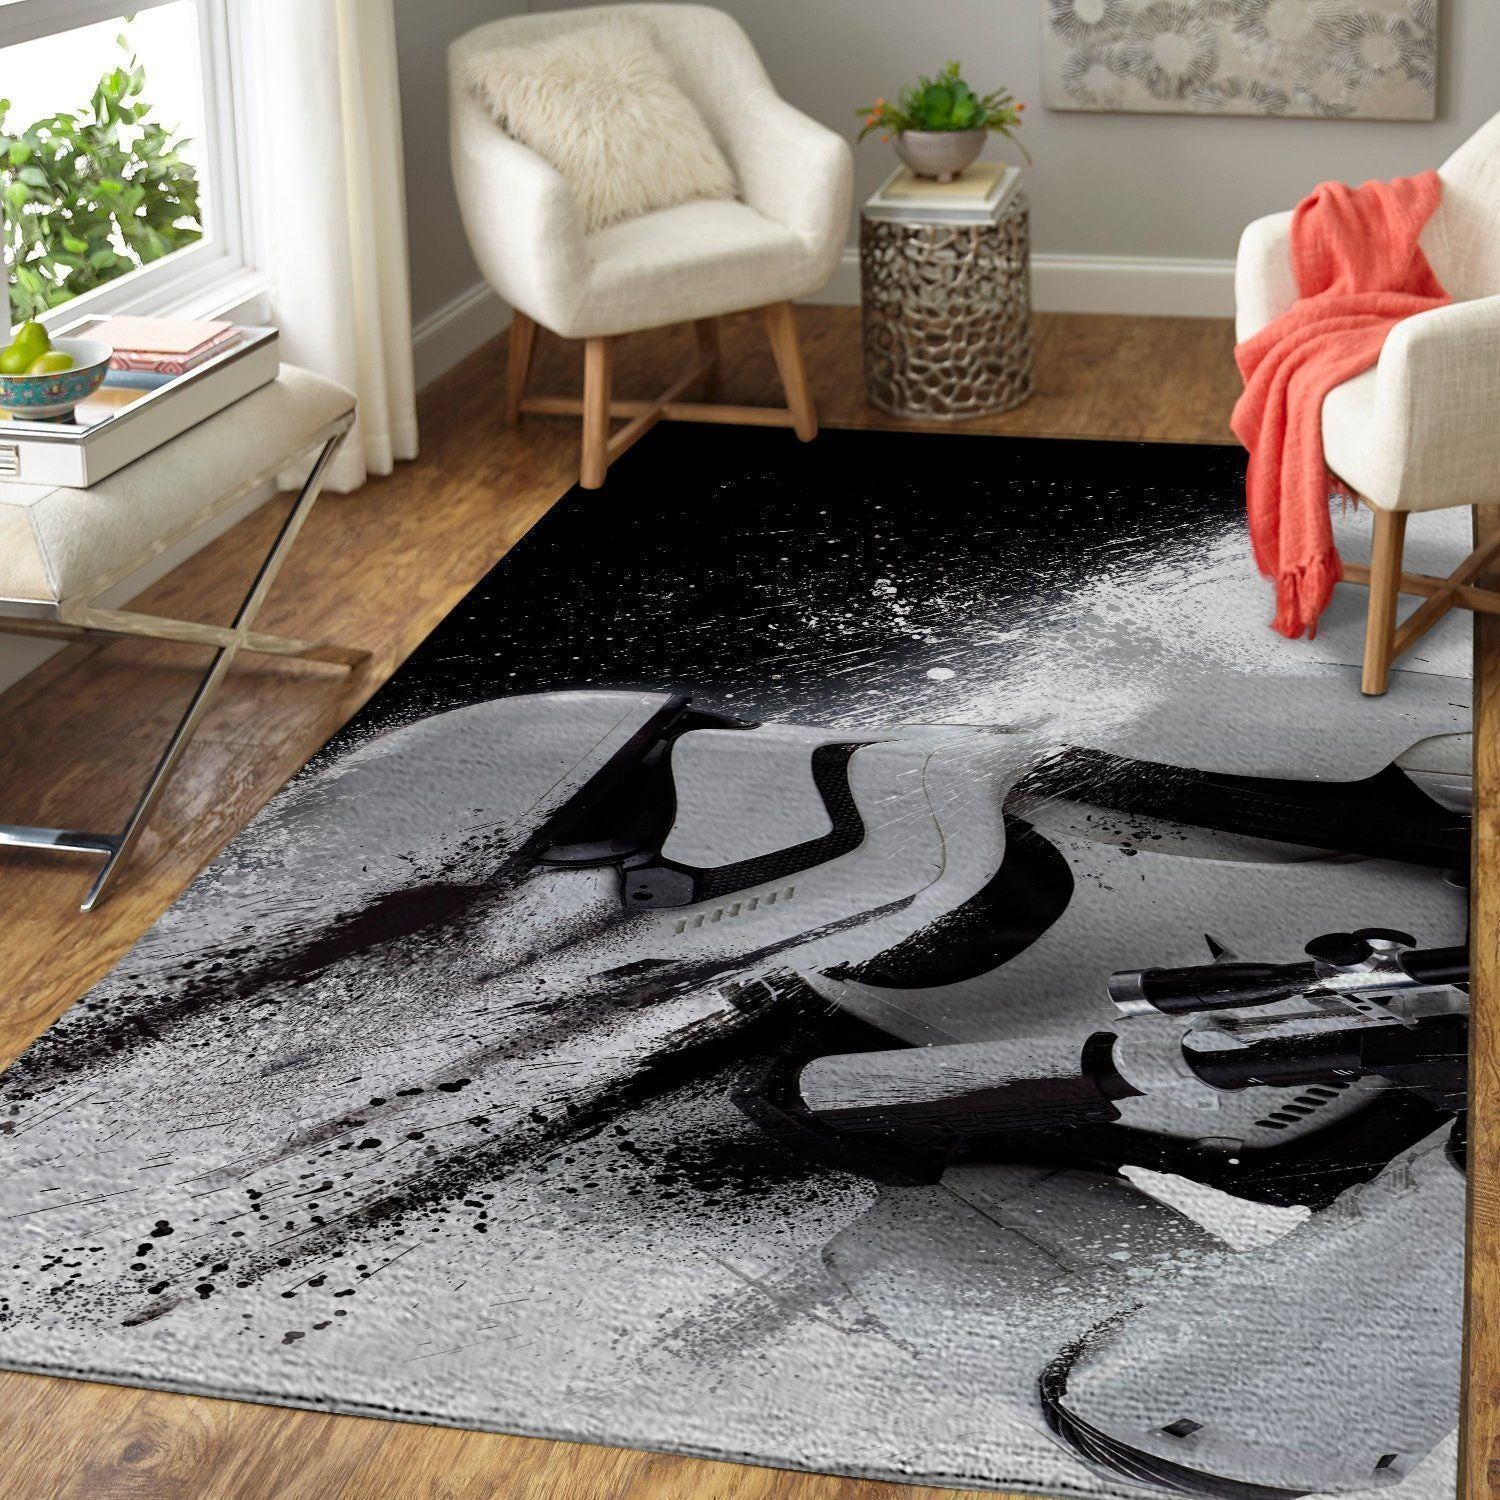 Star Wars Area Rugs, Movie Living Room Carpet, Custom Floor Decor 32